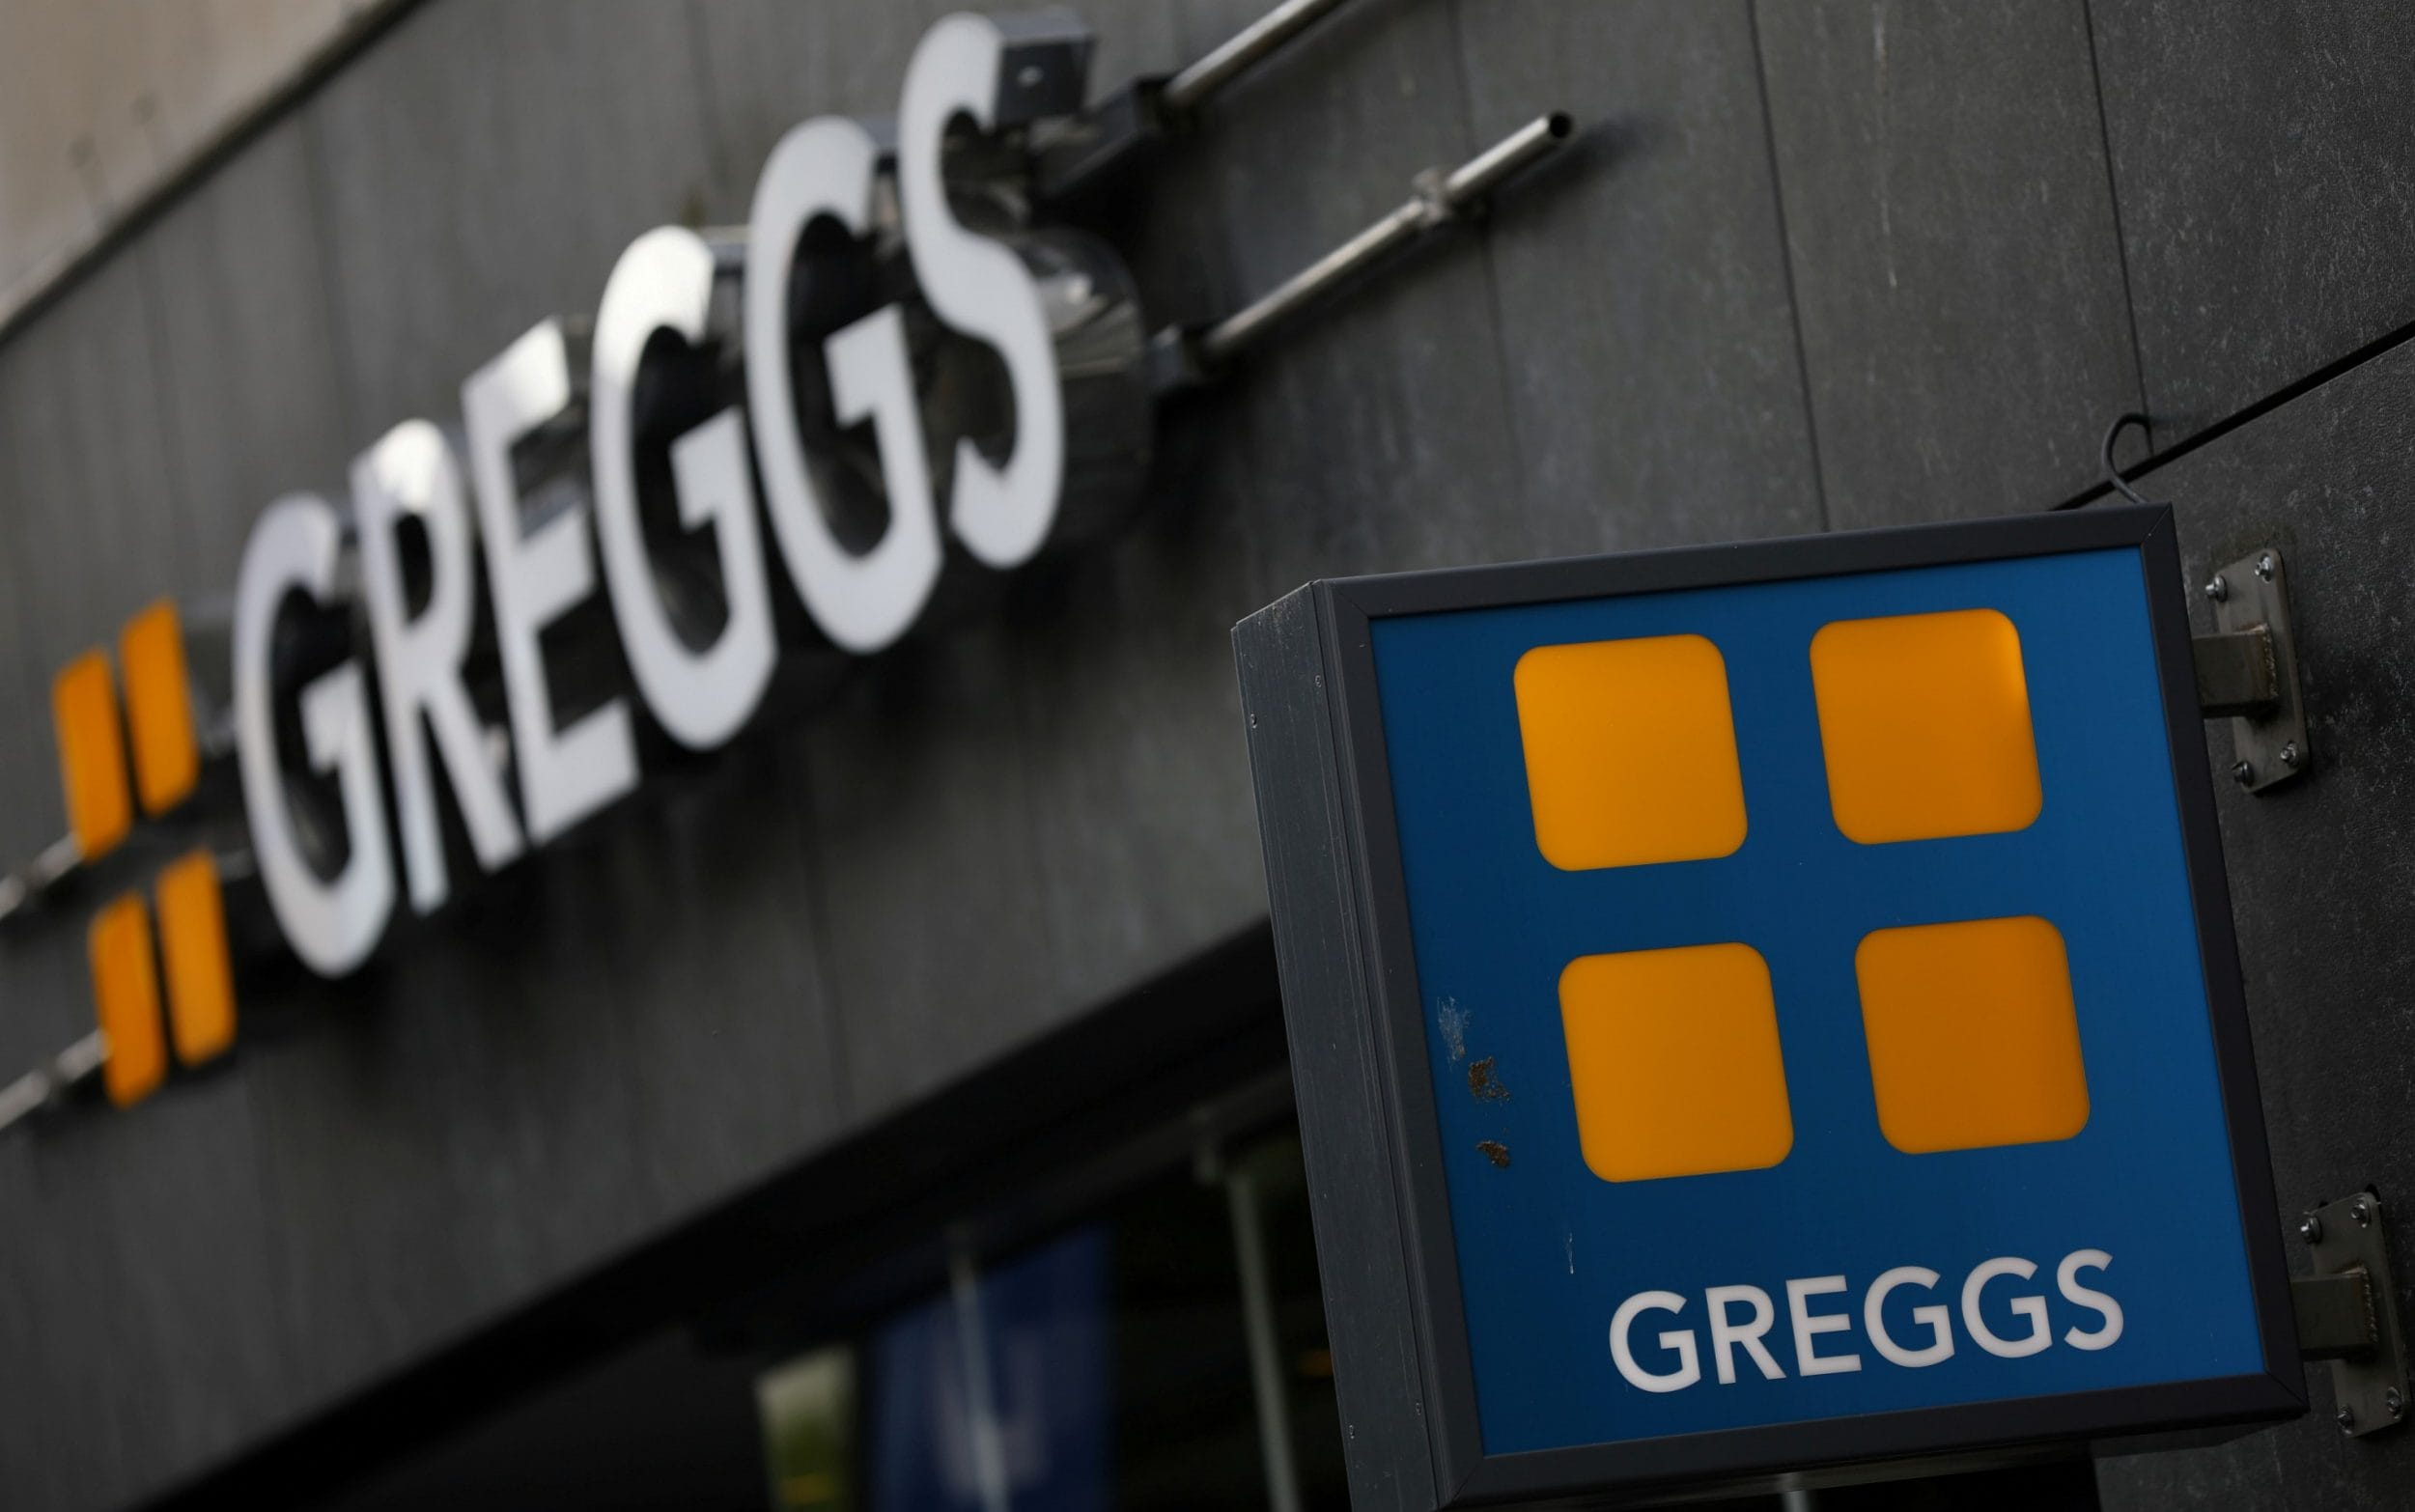 A Greggs sign and logo